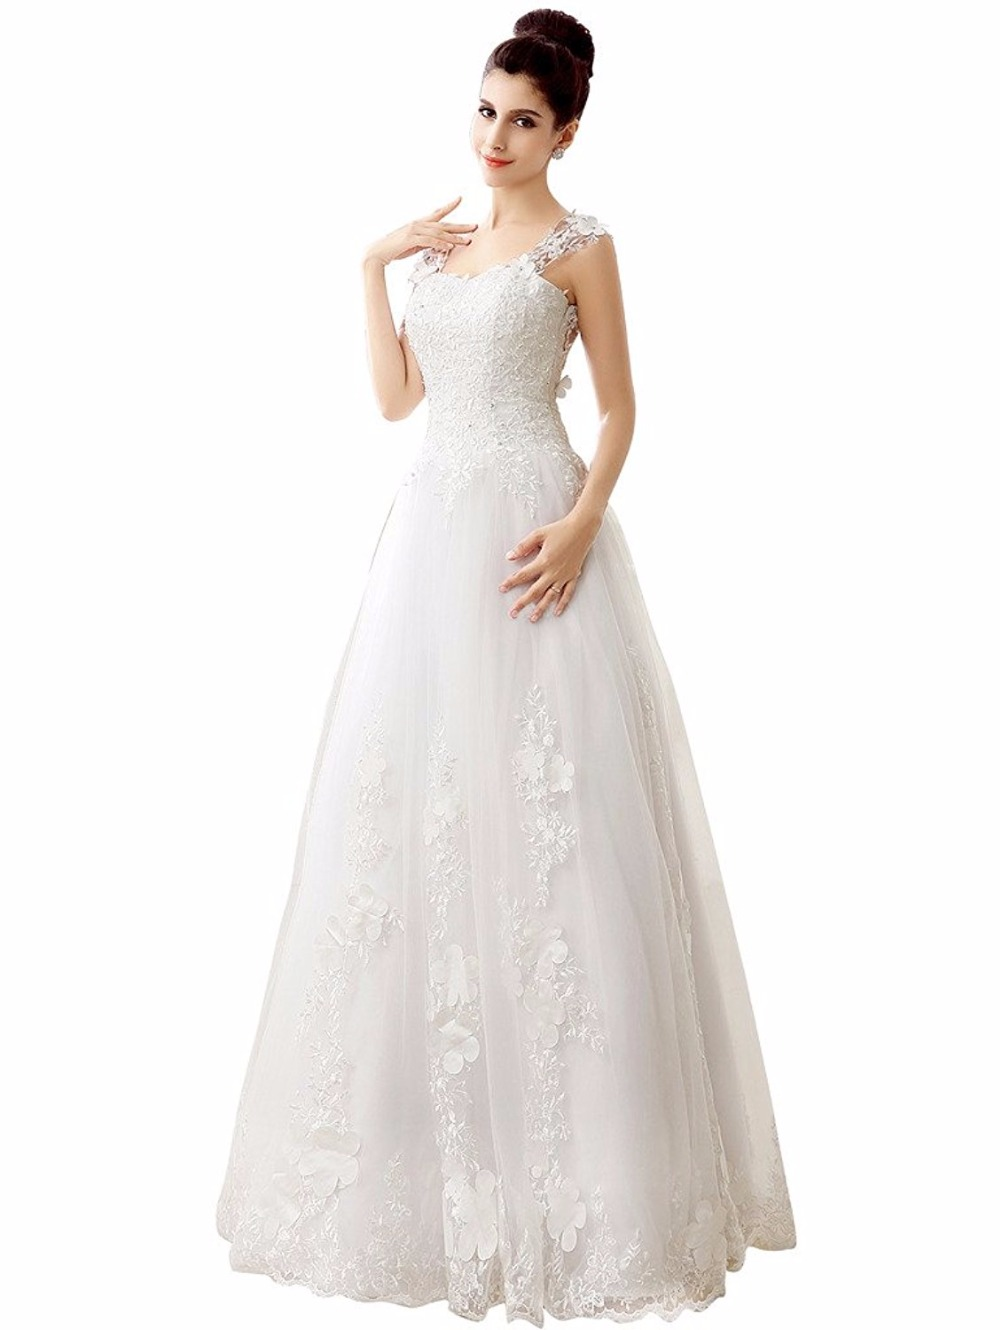 Glamorous a line wedding dresses vintage tulle wedding dress glamorous a line wedding dresses vintage tulle wedding dress vernassa short cap sleeves maternity bridal dress in wedding dresses from weddings events on ombrellifo Images